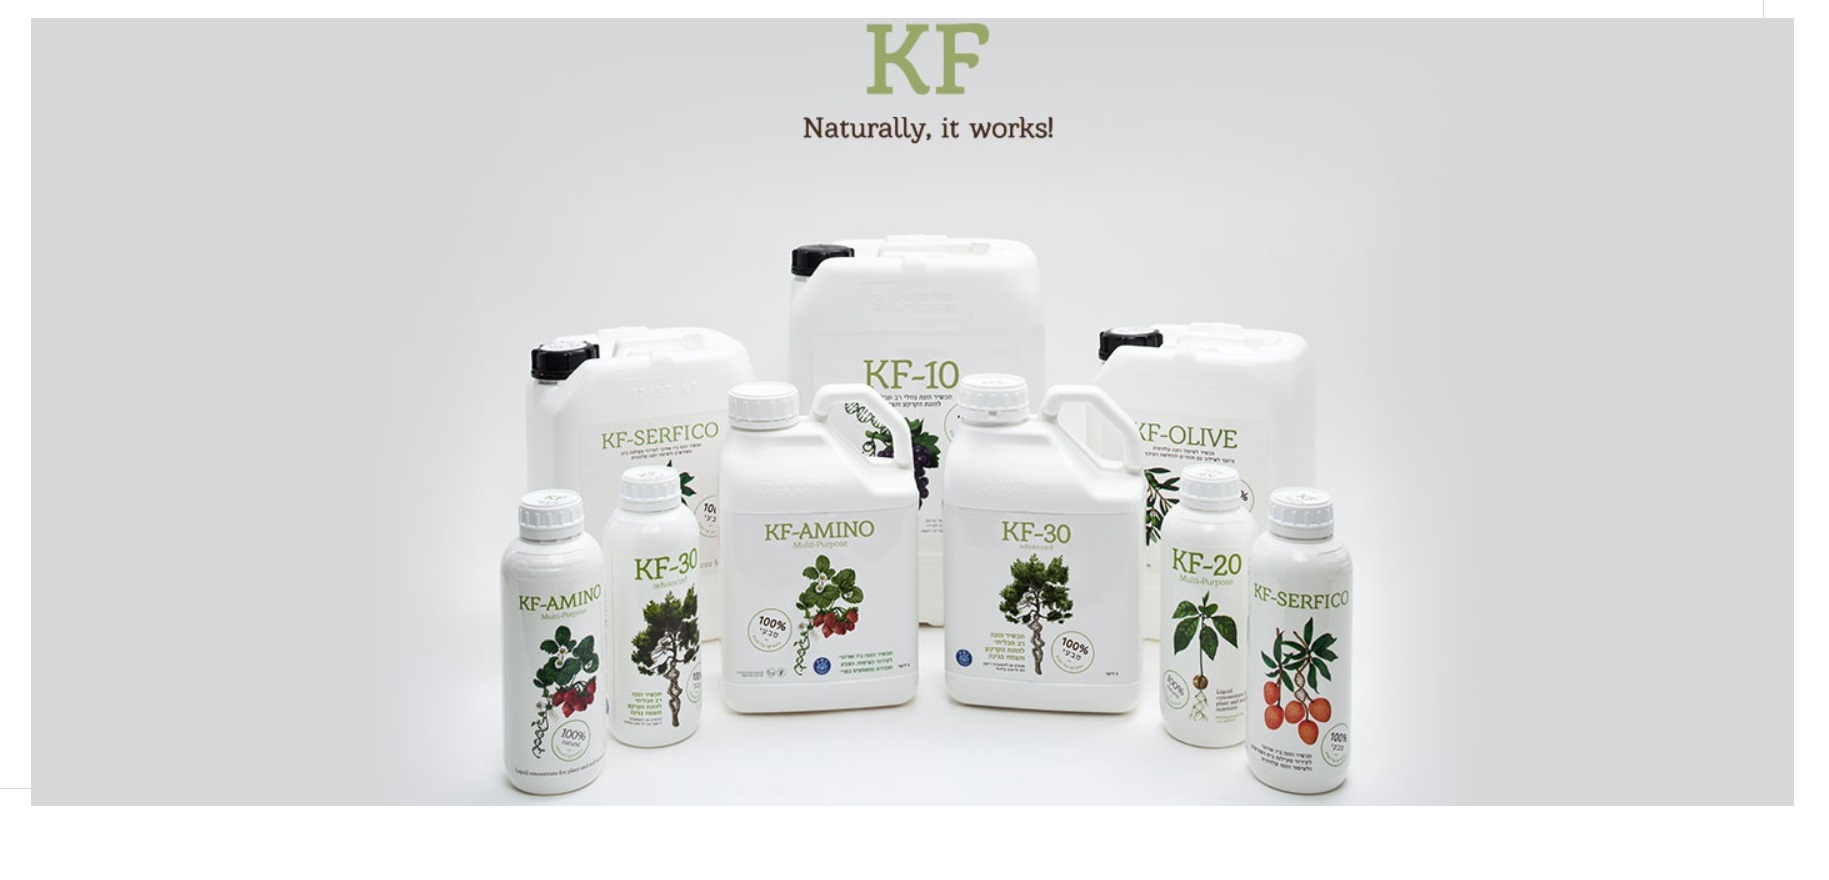 KF products